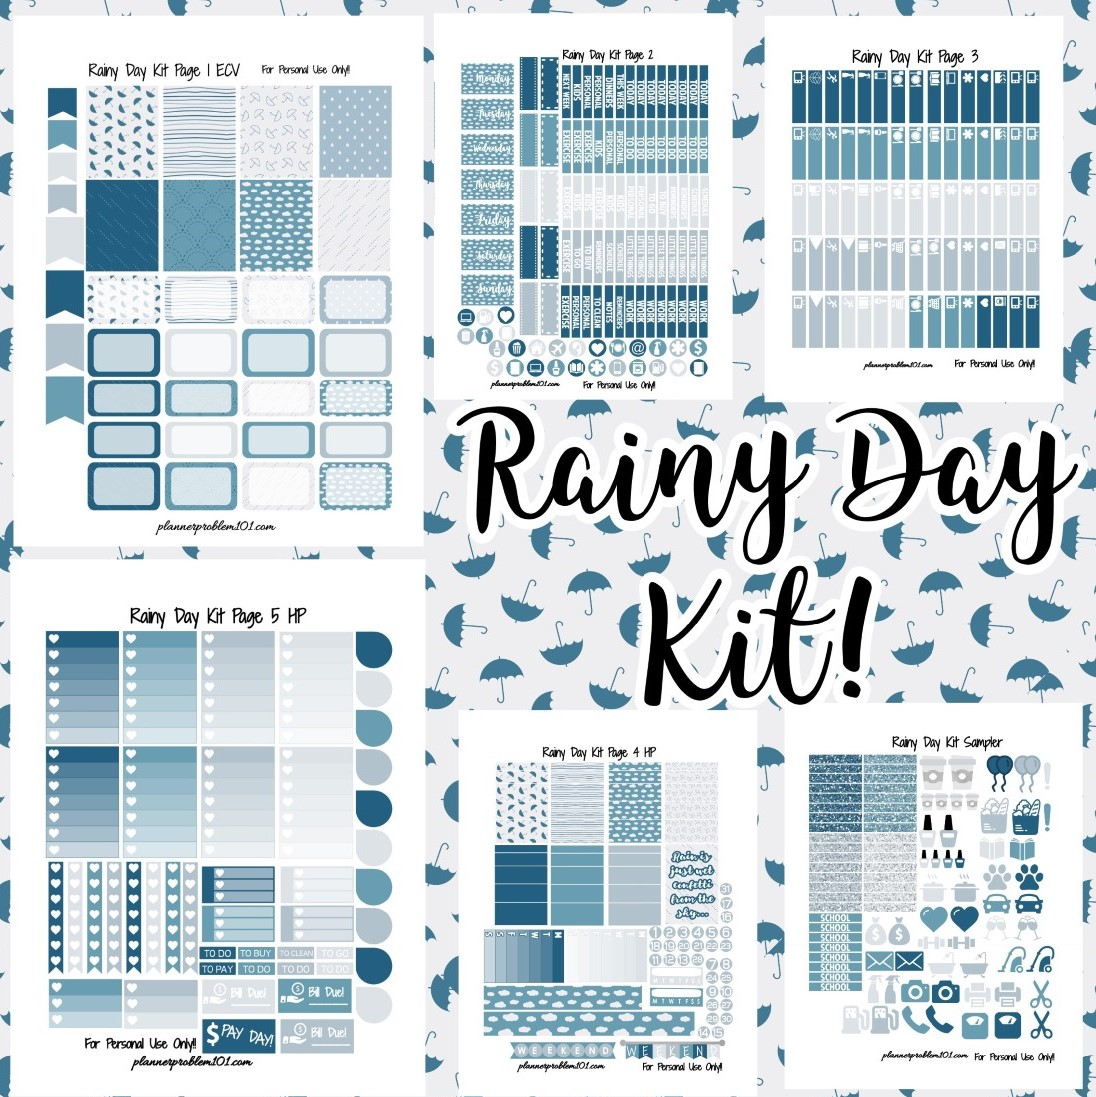 photograph about Free Planner Printable Stickers known as Rainy Working day Package! Absolutely free Printable Planner Stickers